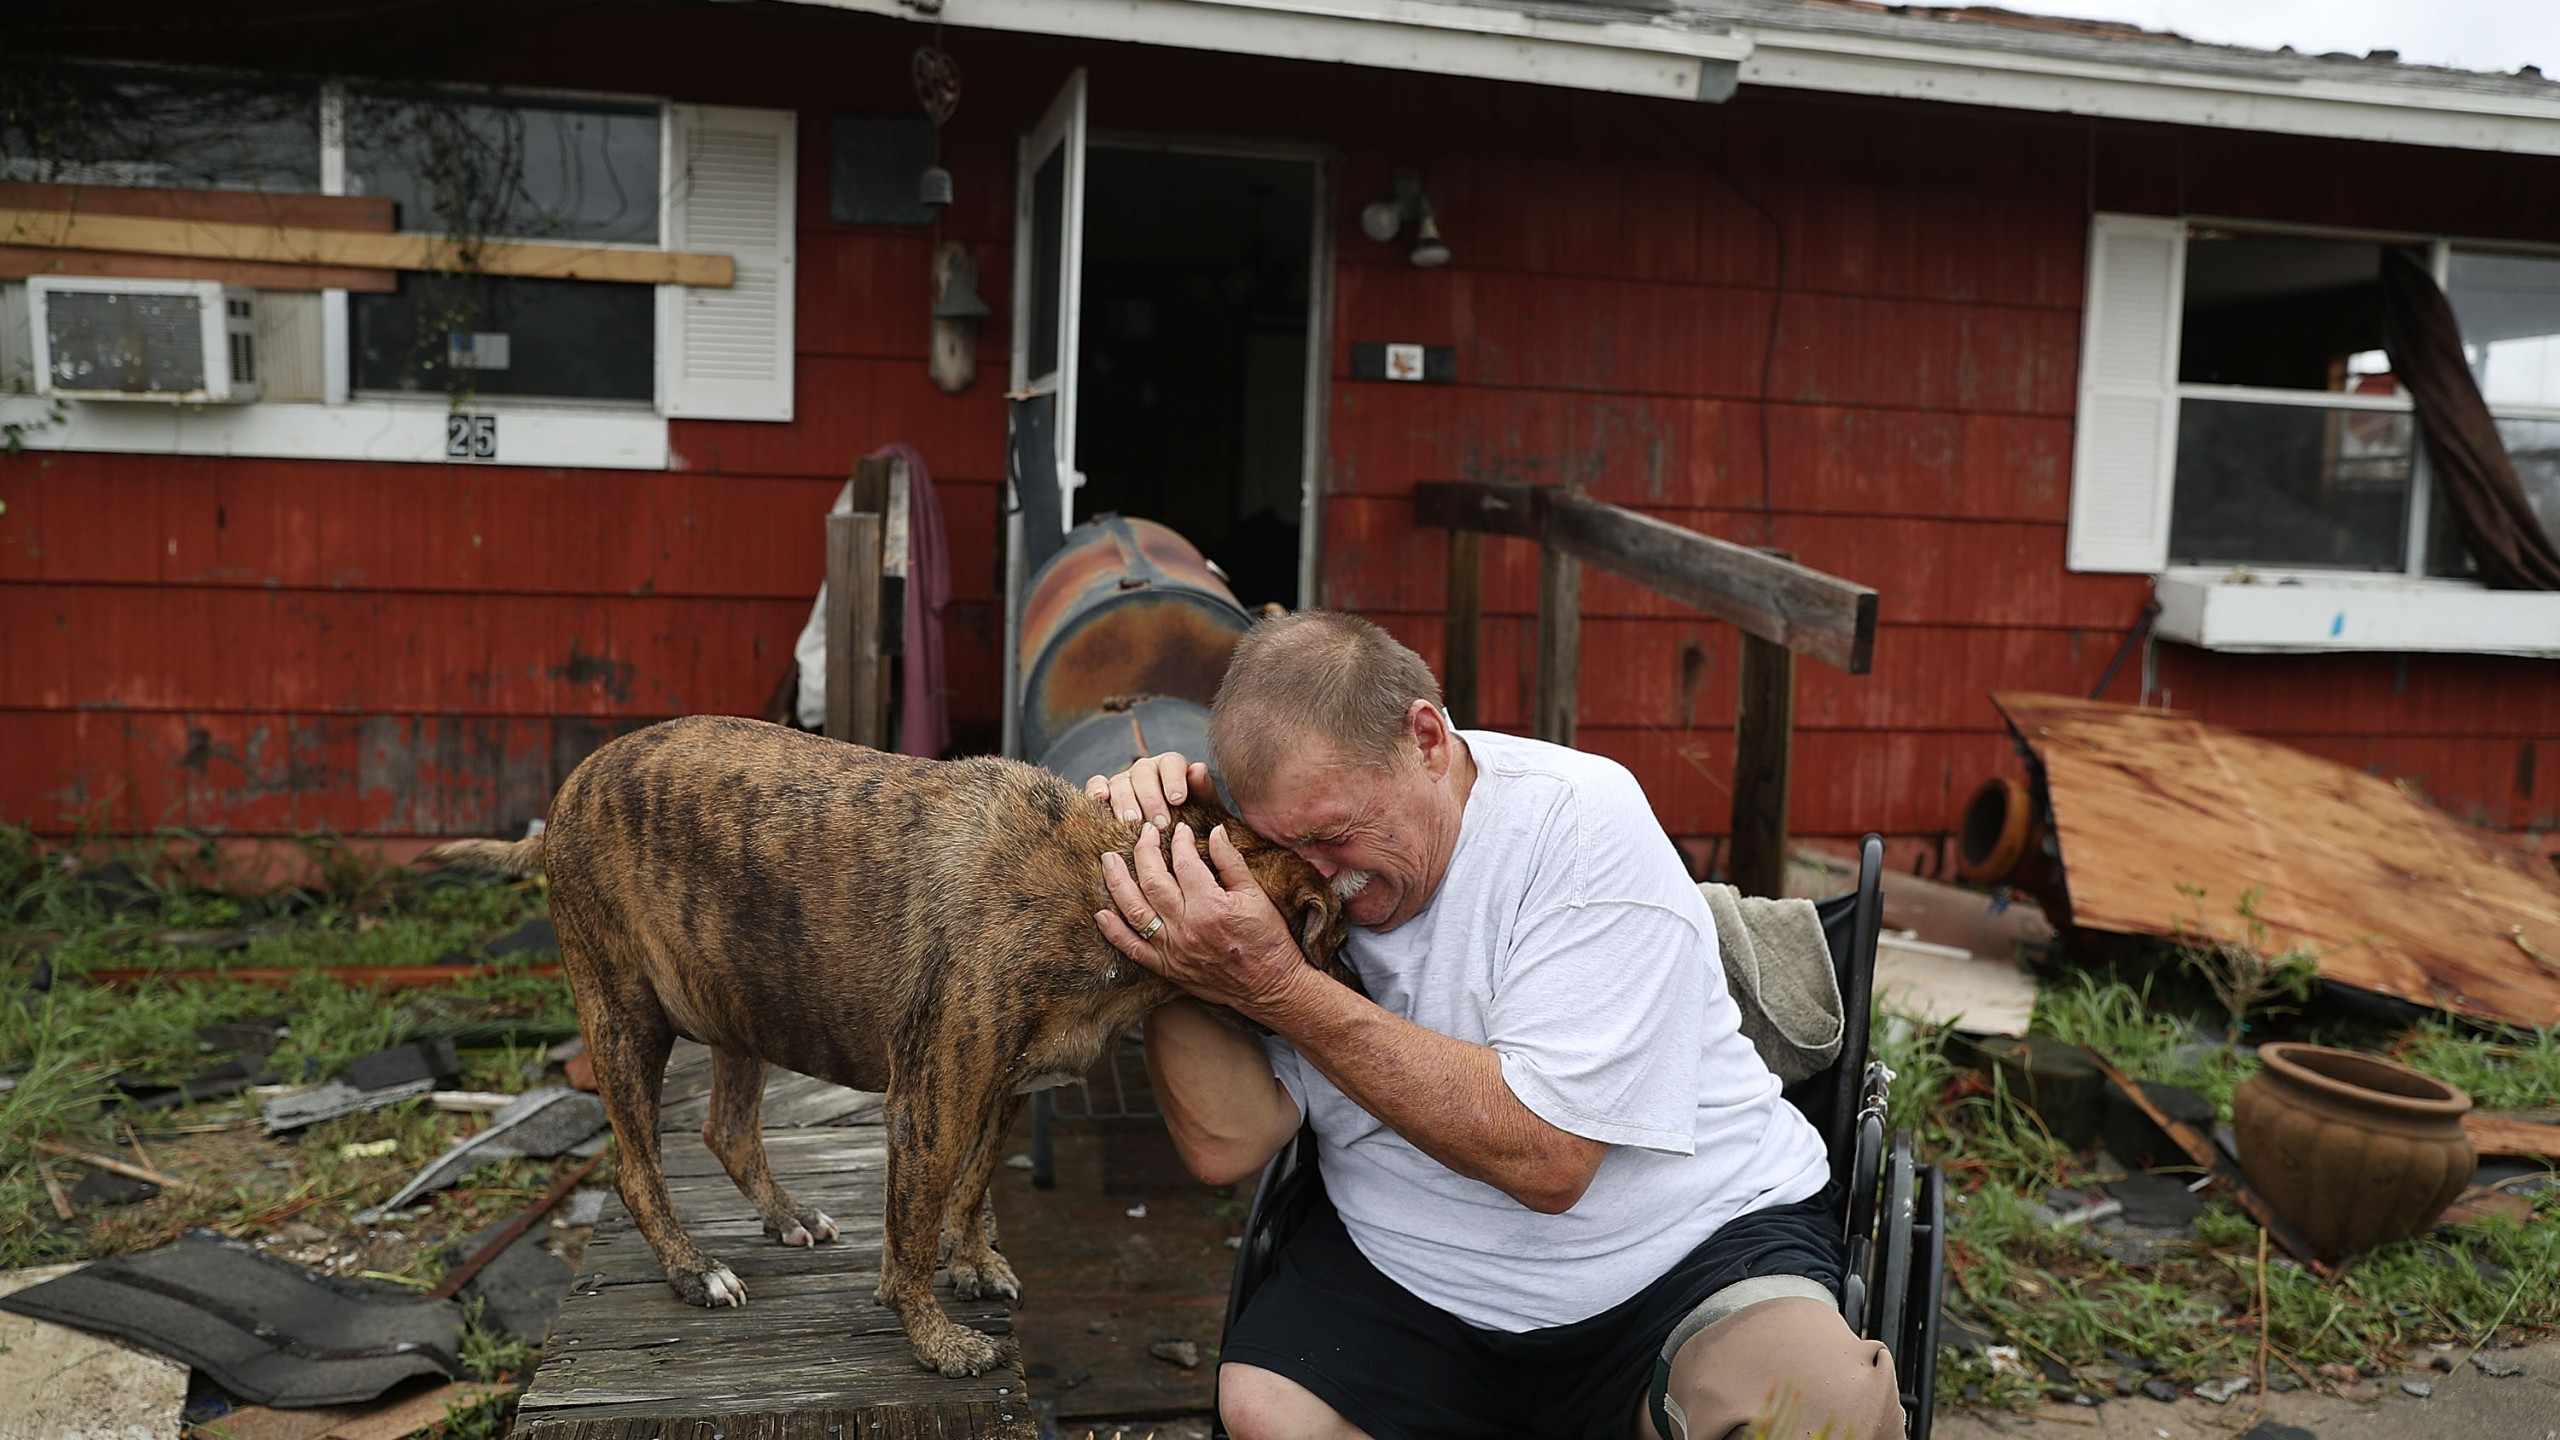 A man cries with his dog Otis after Hurricane Harvey destroyed most of his home on Aug. 26, 2017, in Rockport, Texas. (Credit: Joe Raedle/Getty Images)